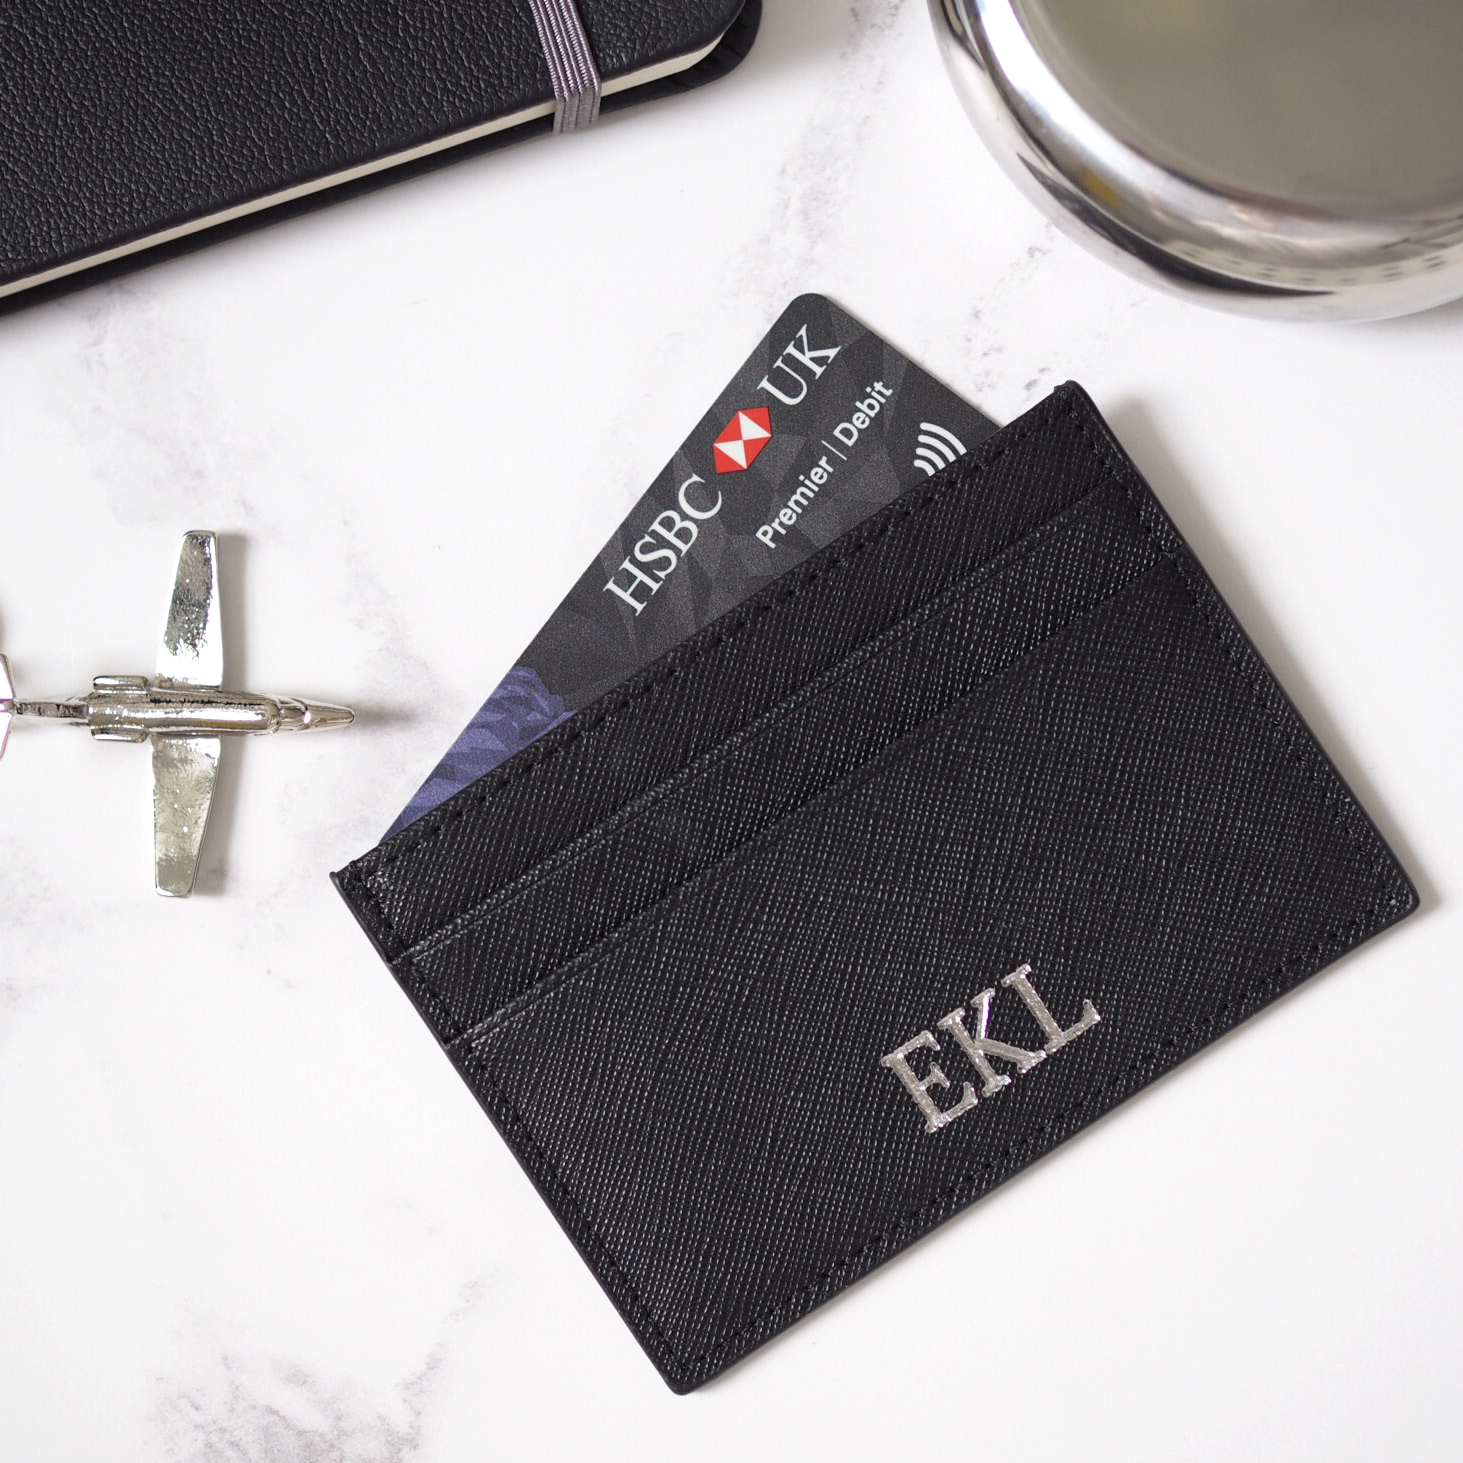 Personalised Leather Card Holder, £19.95